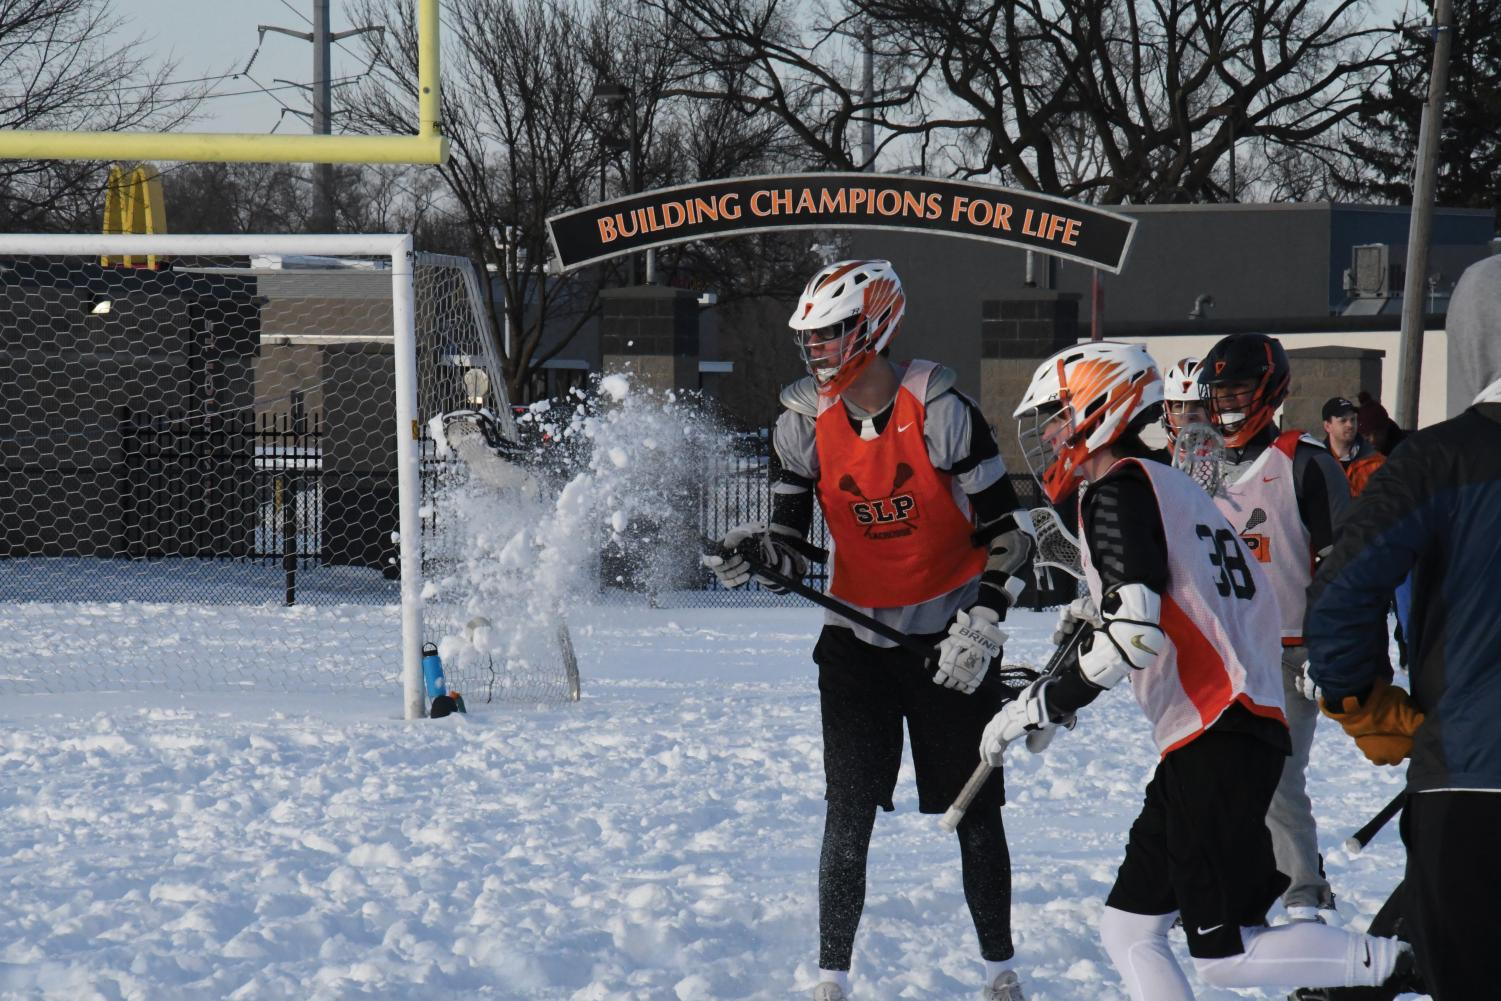 Senior Caleb Mesick scoops the ball out of the snow to toss it to his fellow teammates during boys' lacrosse practice April 4 at the stadium. Spring sports have had difficulties practicing outdoors because of a reported 9 inches of snow, according to Minnesota CBS.